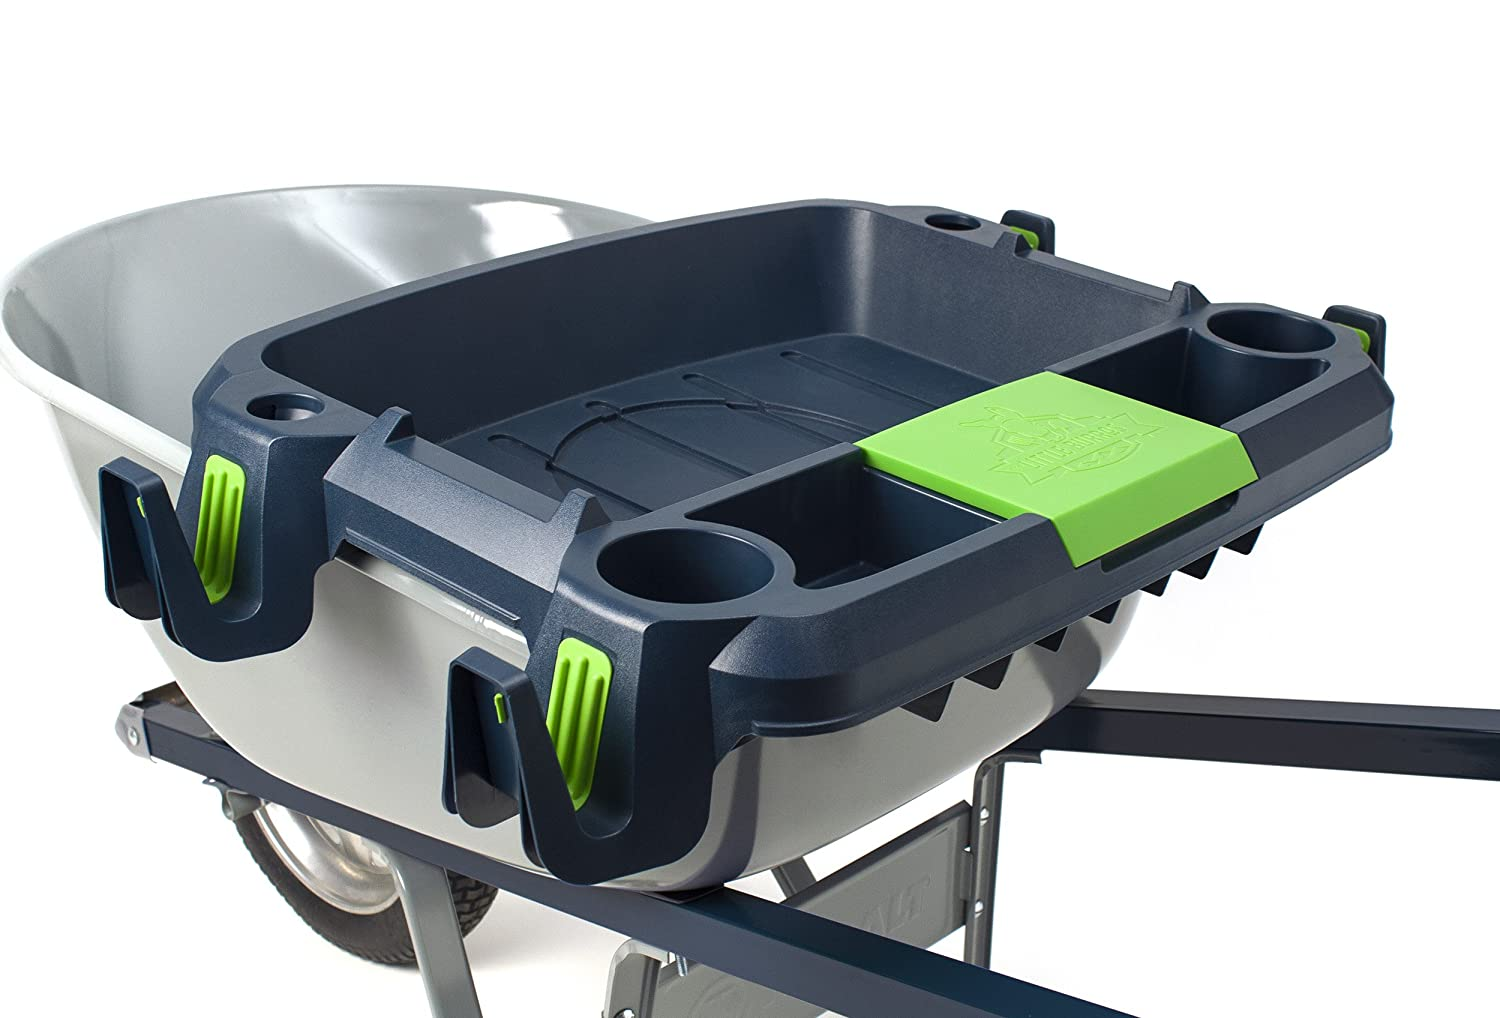 Original Little Burro, USA made lawn garden tray for all 4-6 cu. ft. wheelbarrows. Holds rake, shovel, short handle tools, drinks water tight storage for phone. Wheelbarrow not included. Great gift